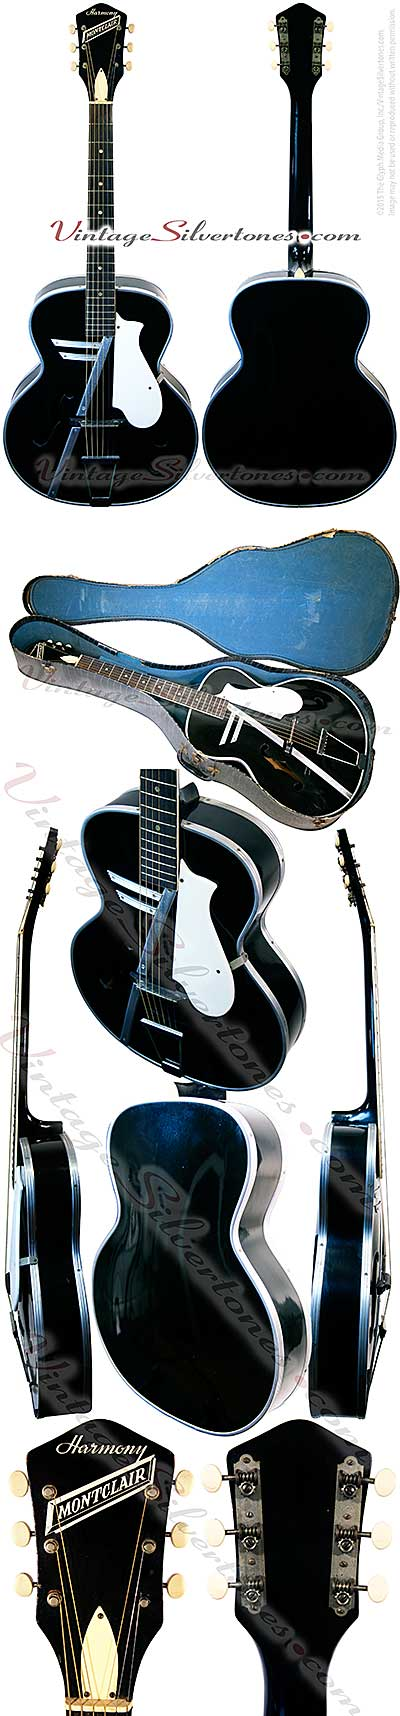 Harmony H956S Montclair made by Harmony in Chicago, acoustic guitar, archtop, black finish, harmometal binding, birch top,made in 1957